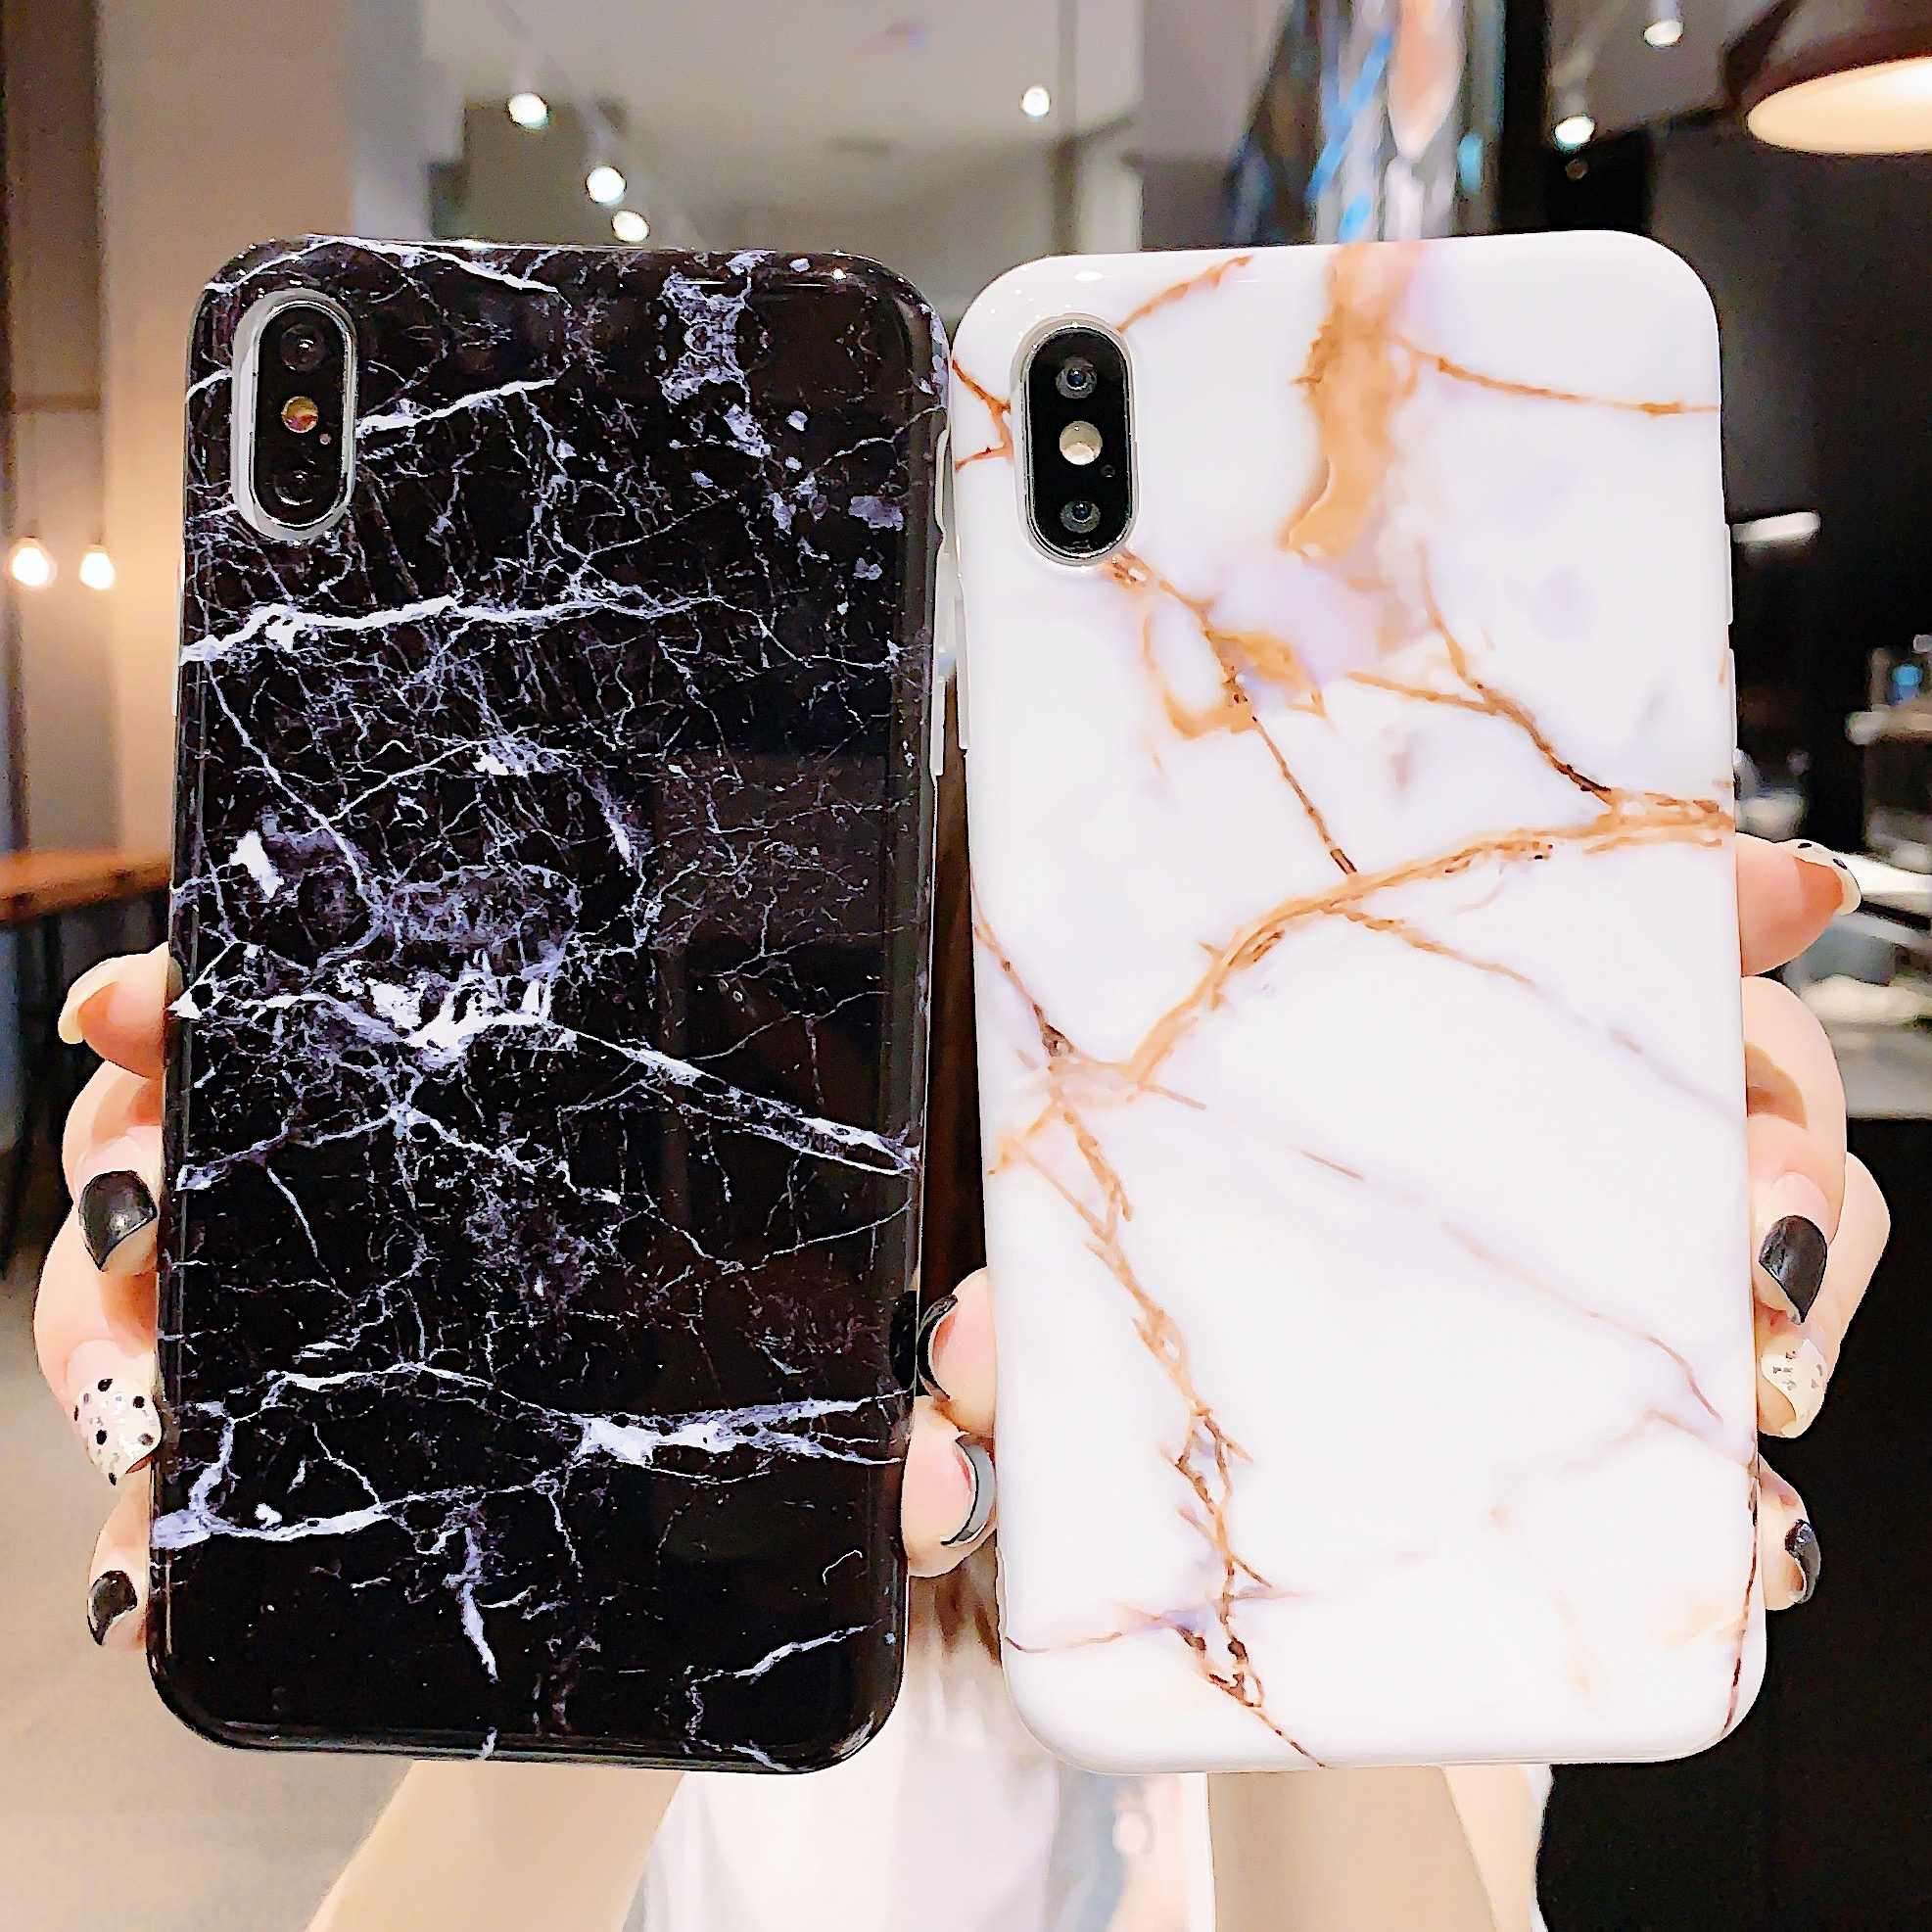 TPU macio Caso de Mármore no Para o Coque iphone 7 XS MAX Caso Tampa Traseira Para O iphone 6 6S 7 8 Plus caixa Do Telefone Tampa Da Caixa Do iphone X XR